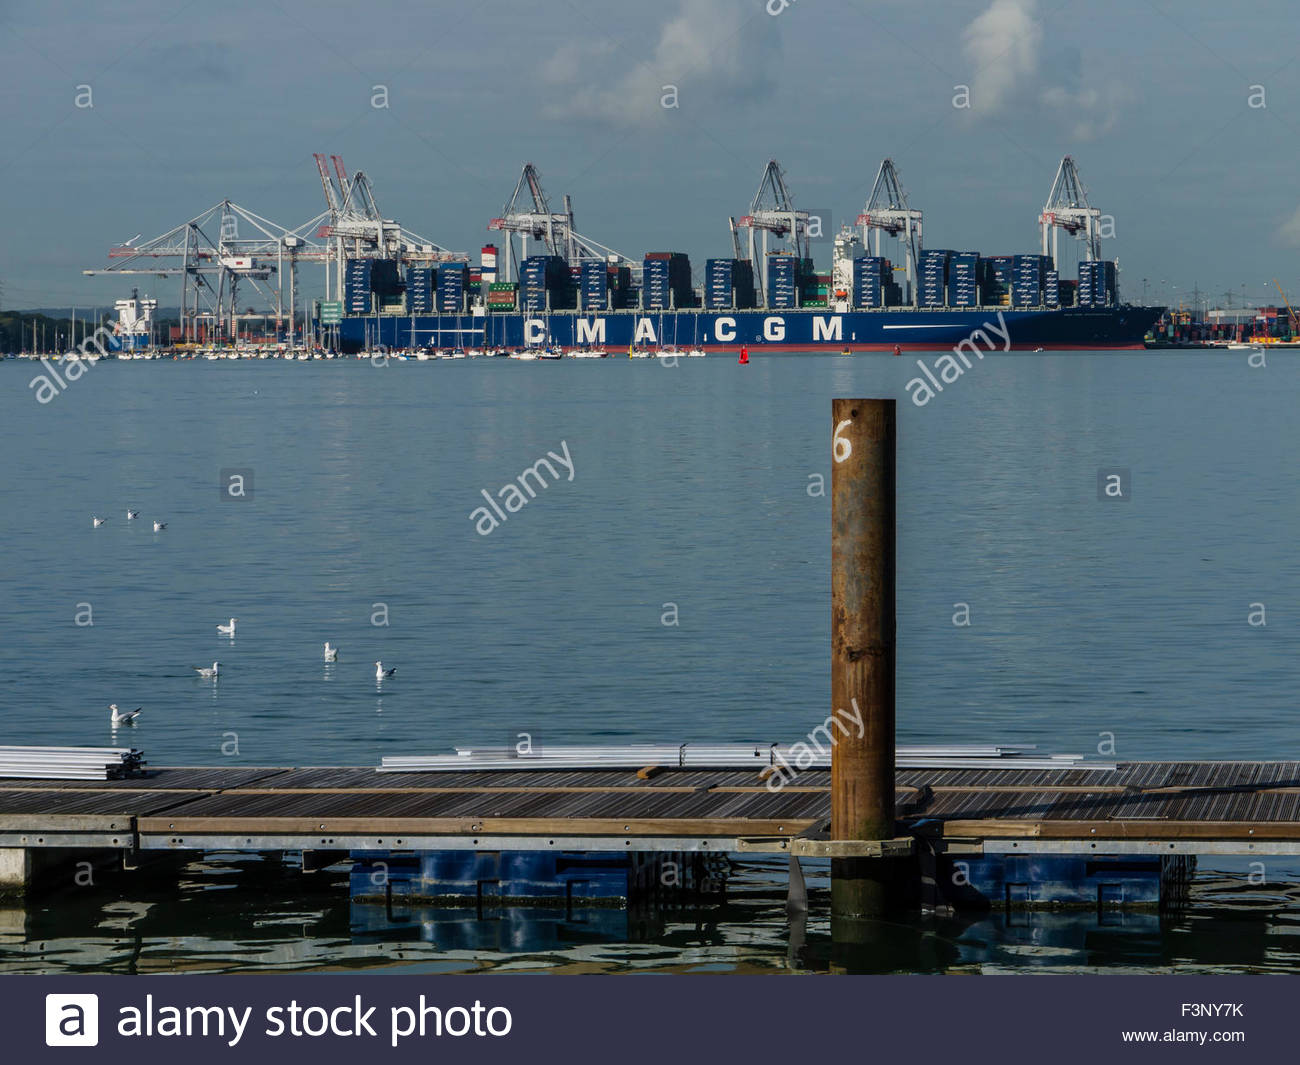 Southampton Hampshire England Oct 2015 The CMA CGM BOUGAINVILLE, the world largest container ship sailing under - Stock Image